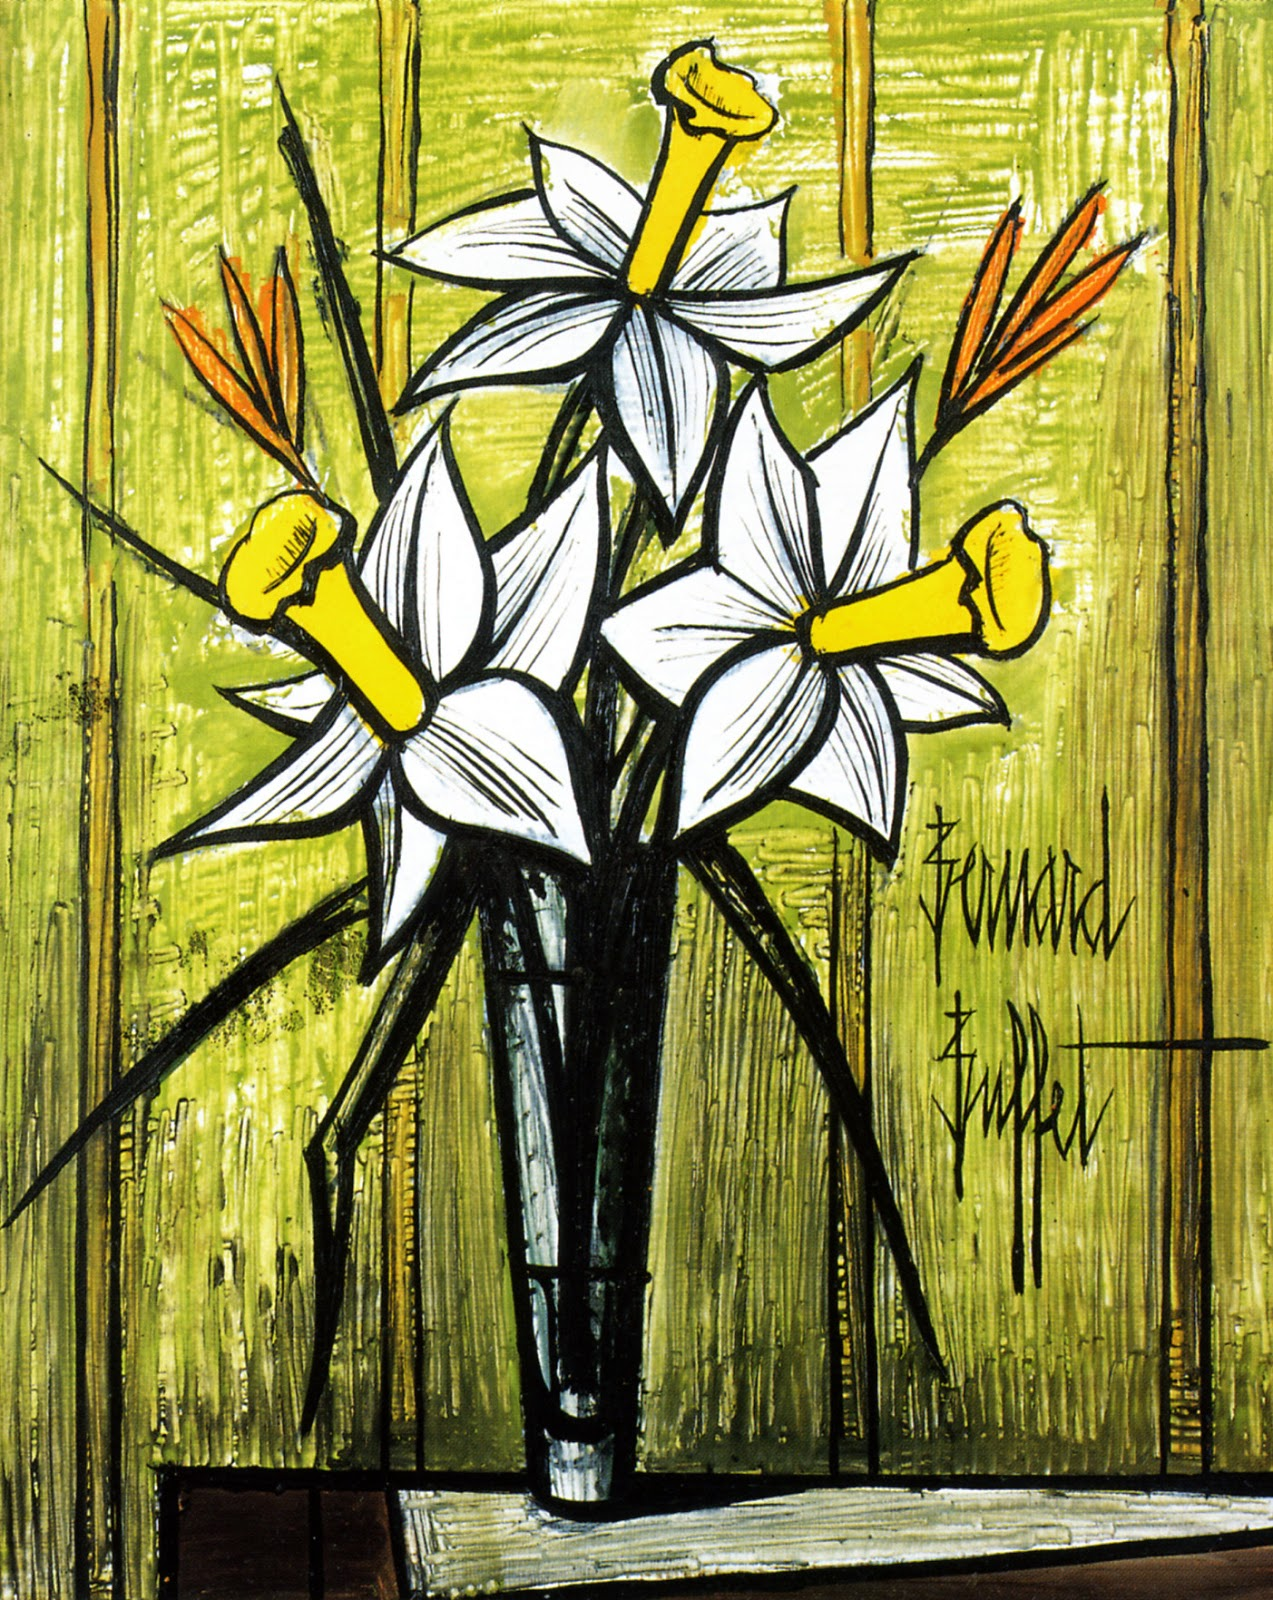 expressionism bernard buffet 39 s flowers art for your wallpaper. Black Bedroom Furniture Sets. Home Design Ideas